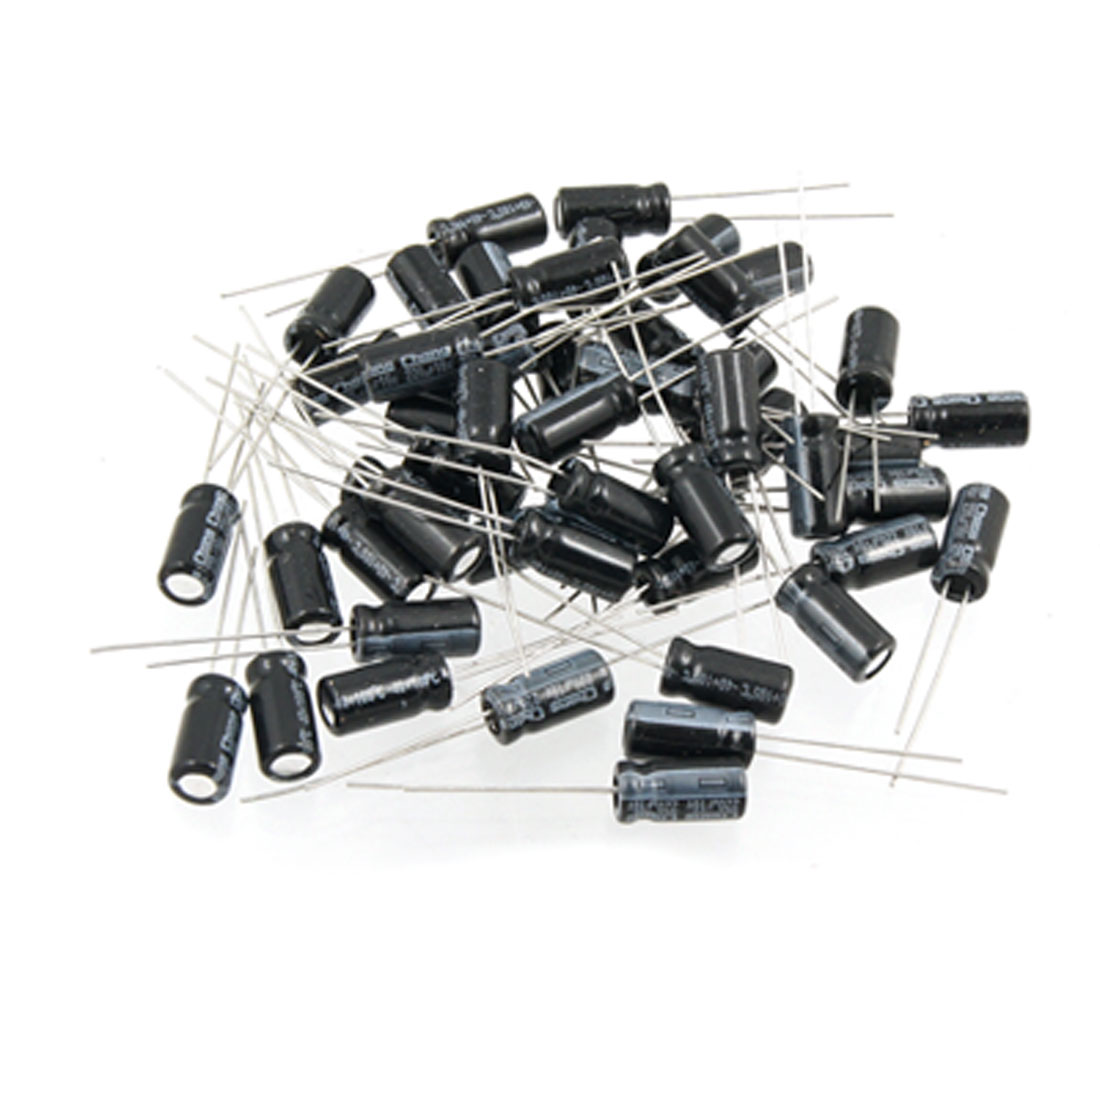 220uF 16V Aluminum Electrolytic Capacitor Radial 12.5 x 6mm(Bag of 50)